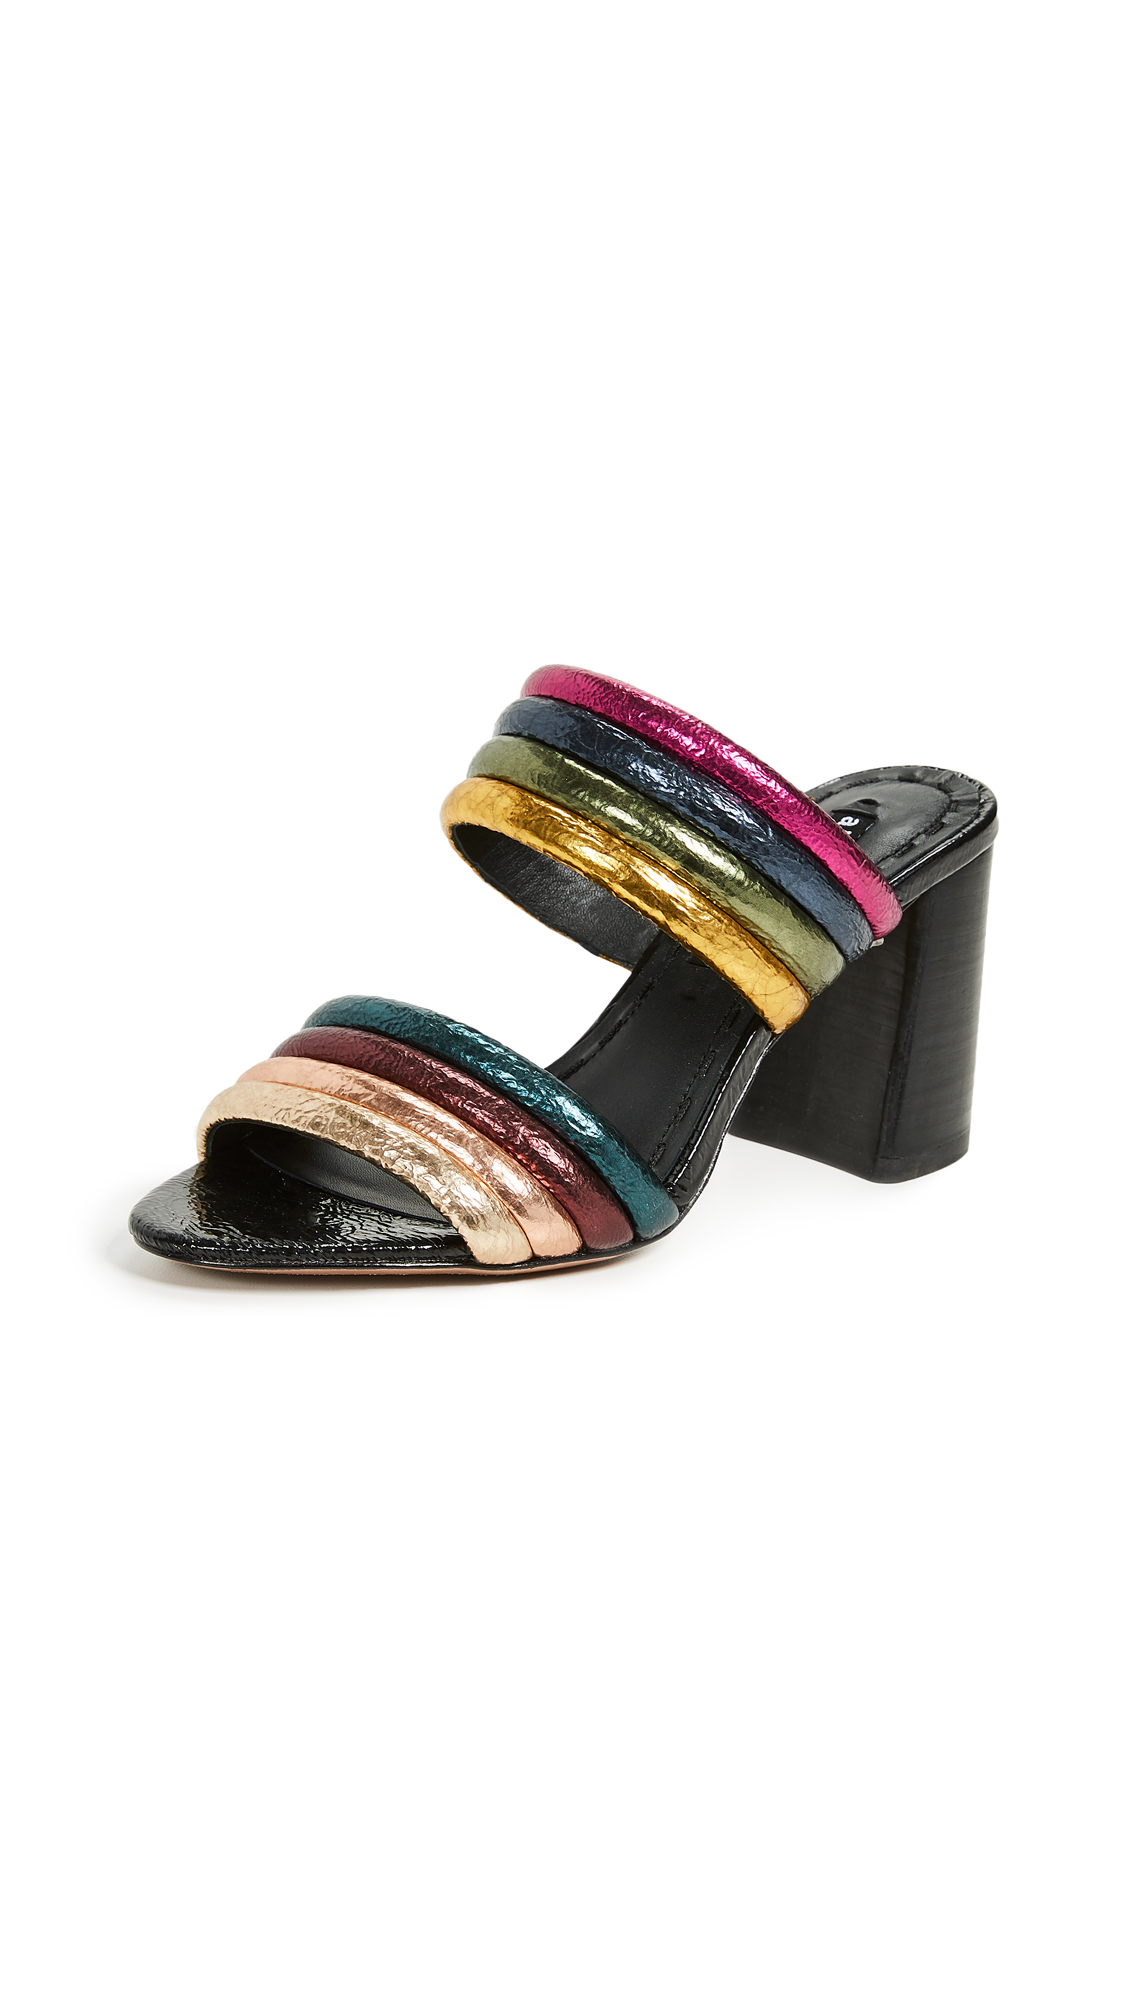 alice + olivia Lori Double Strap Sandals - Black Multi